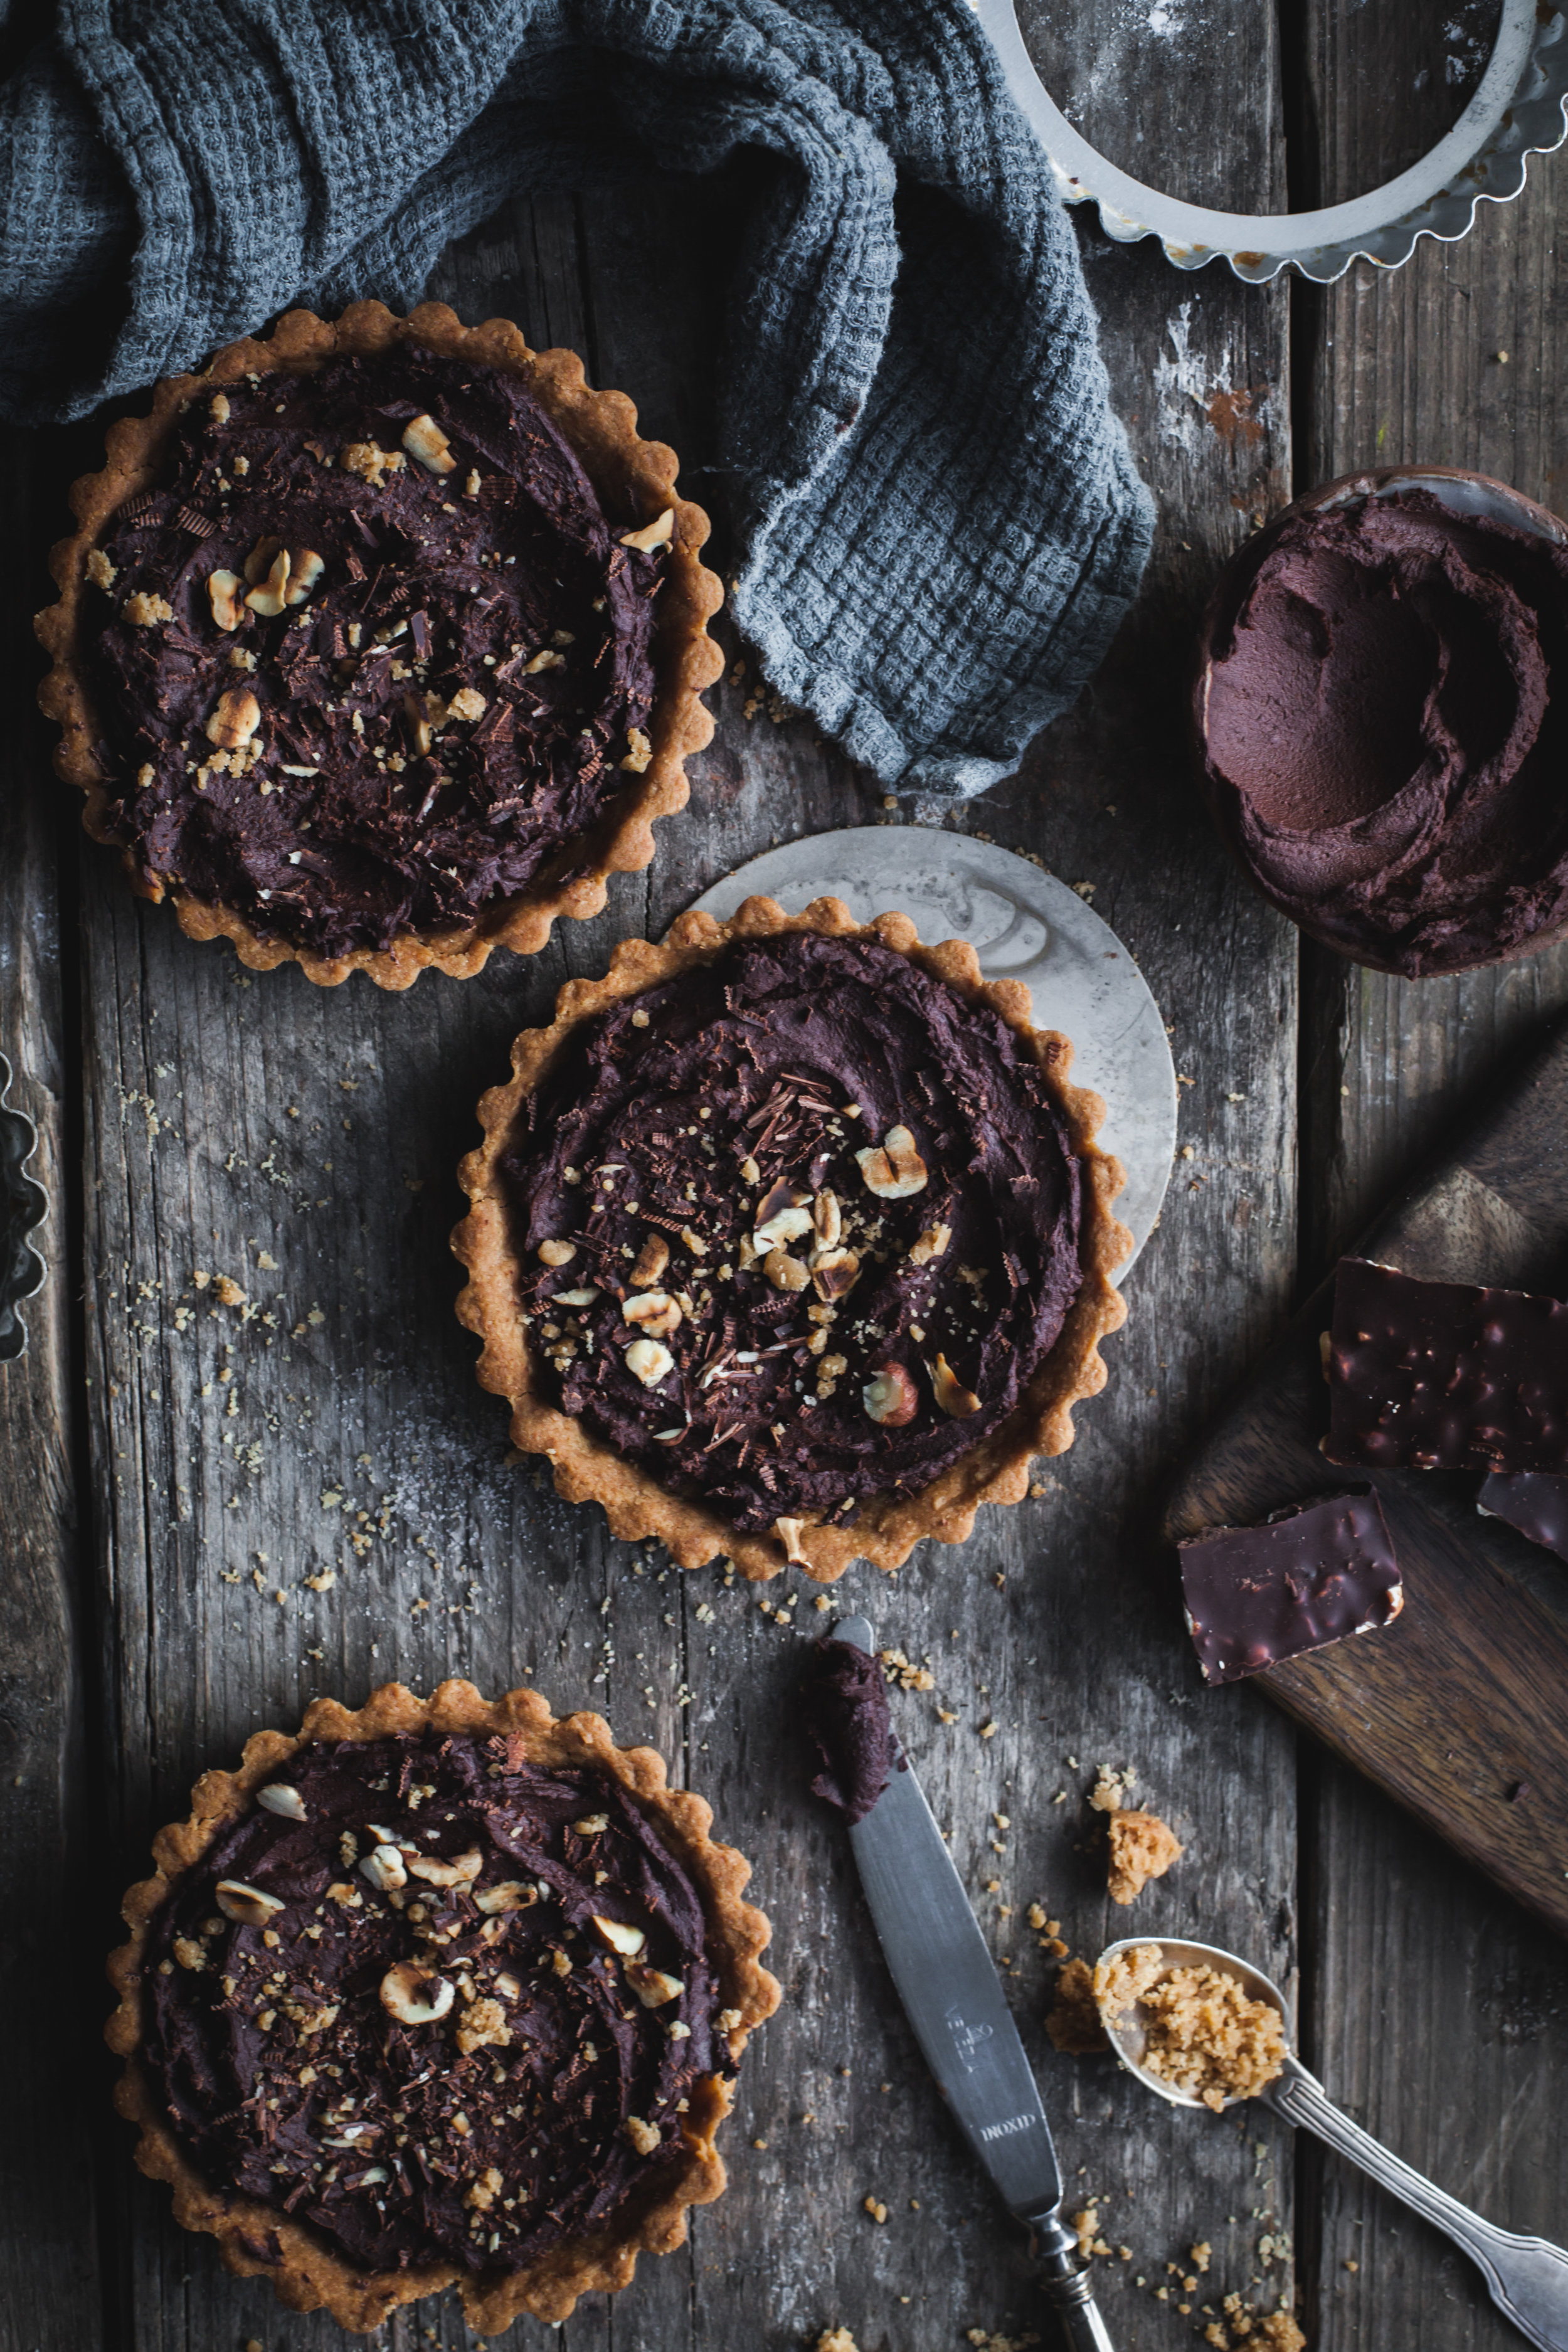 Vegan chocolate tarts with toasted aquafaba Thoughts about being a Food Photographer on Instagram